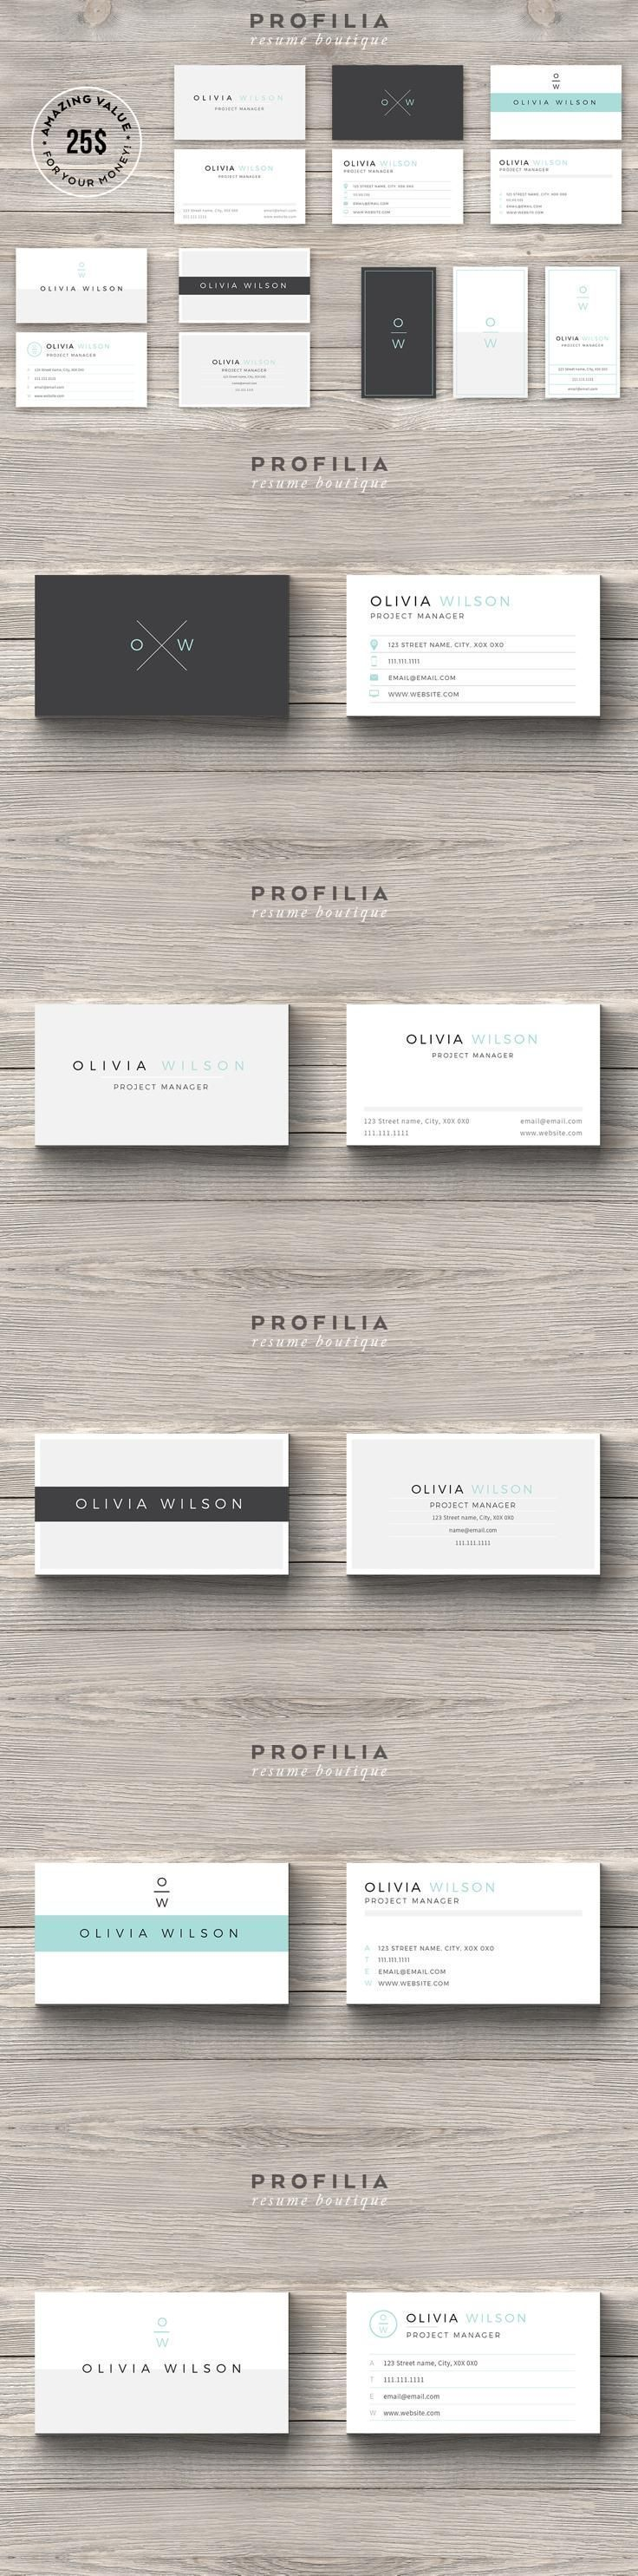 53 Best Products Images On Pinterest Business Card Design